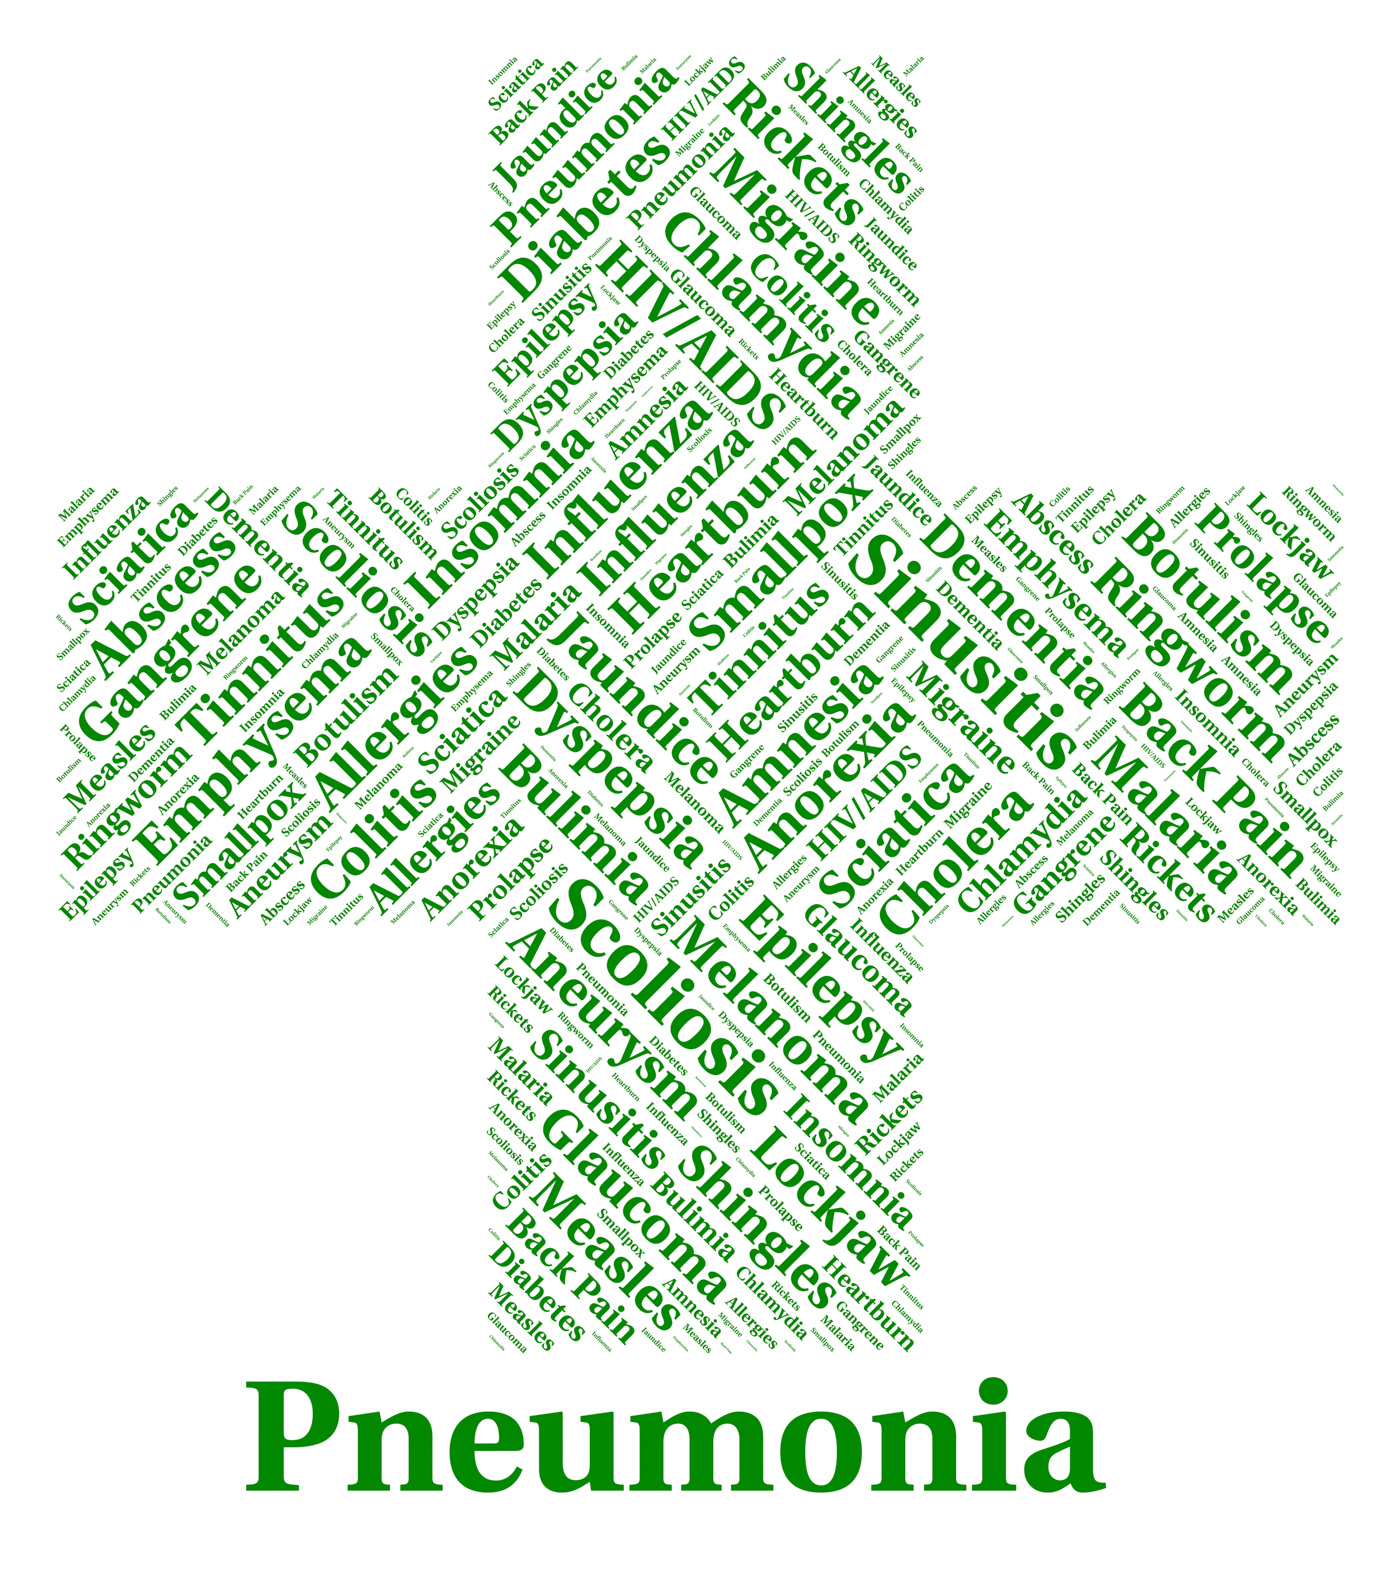 Pneumonia Illness Represents Poor Health And Ailment, Affliction, Infections, Sickness, Sick, HQ Photo